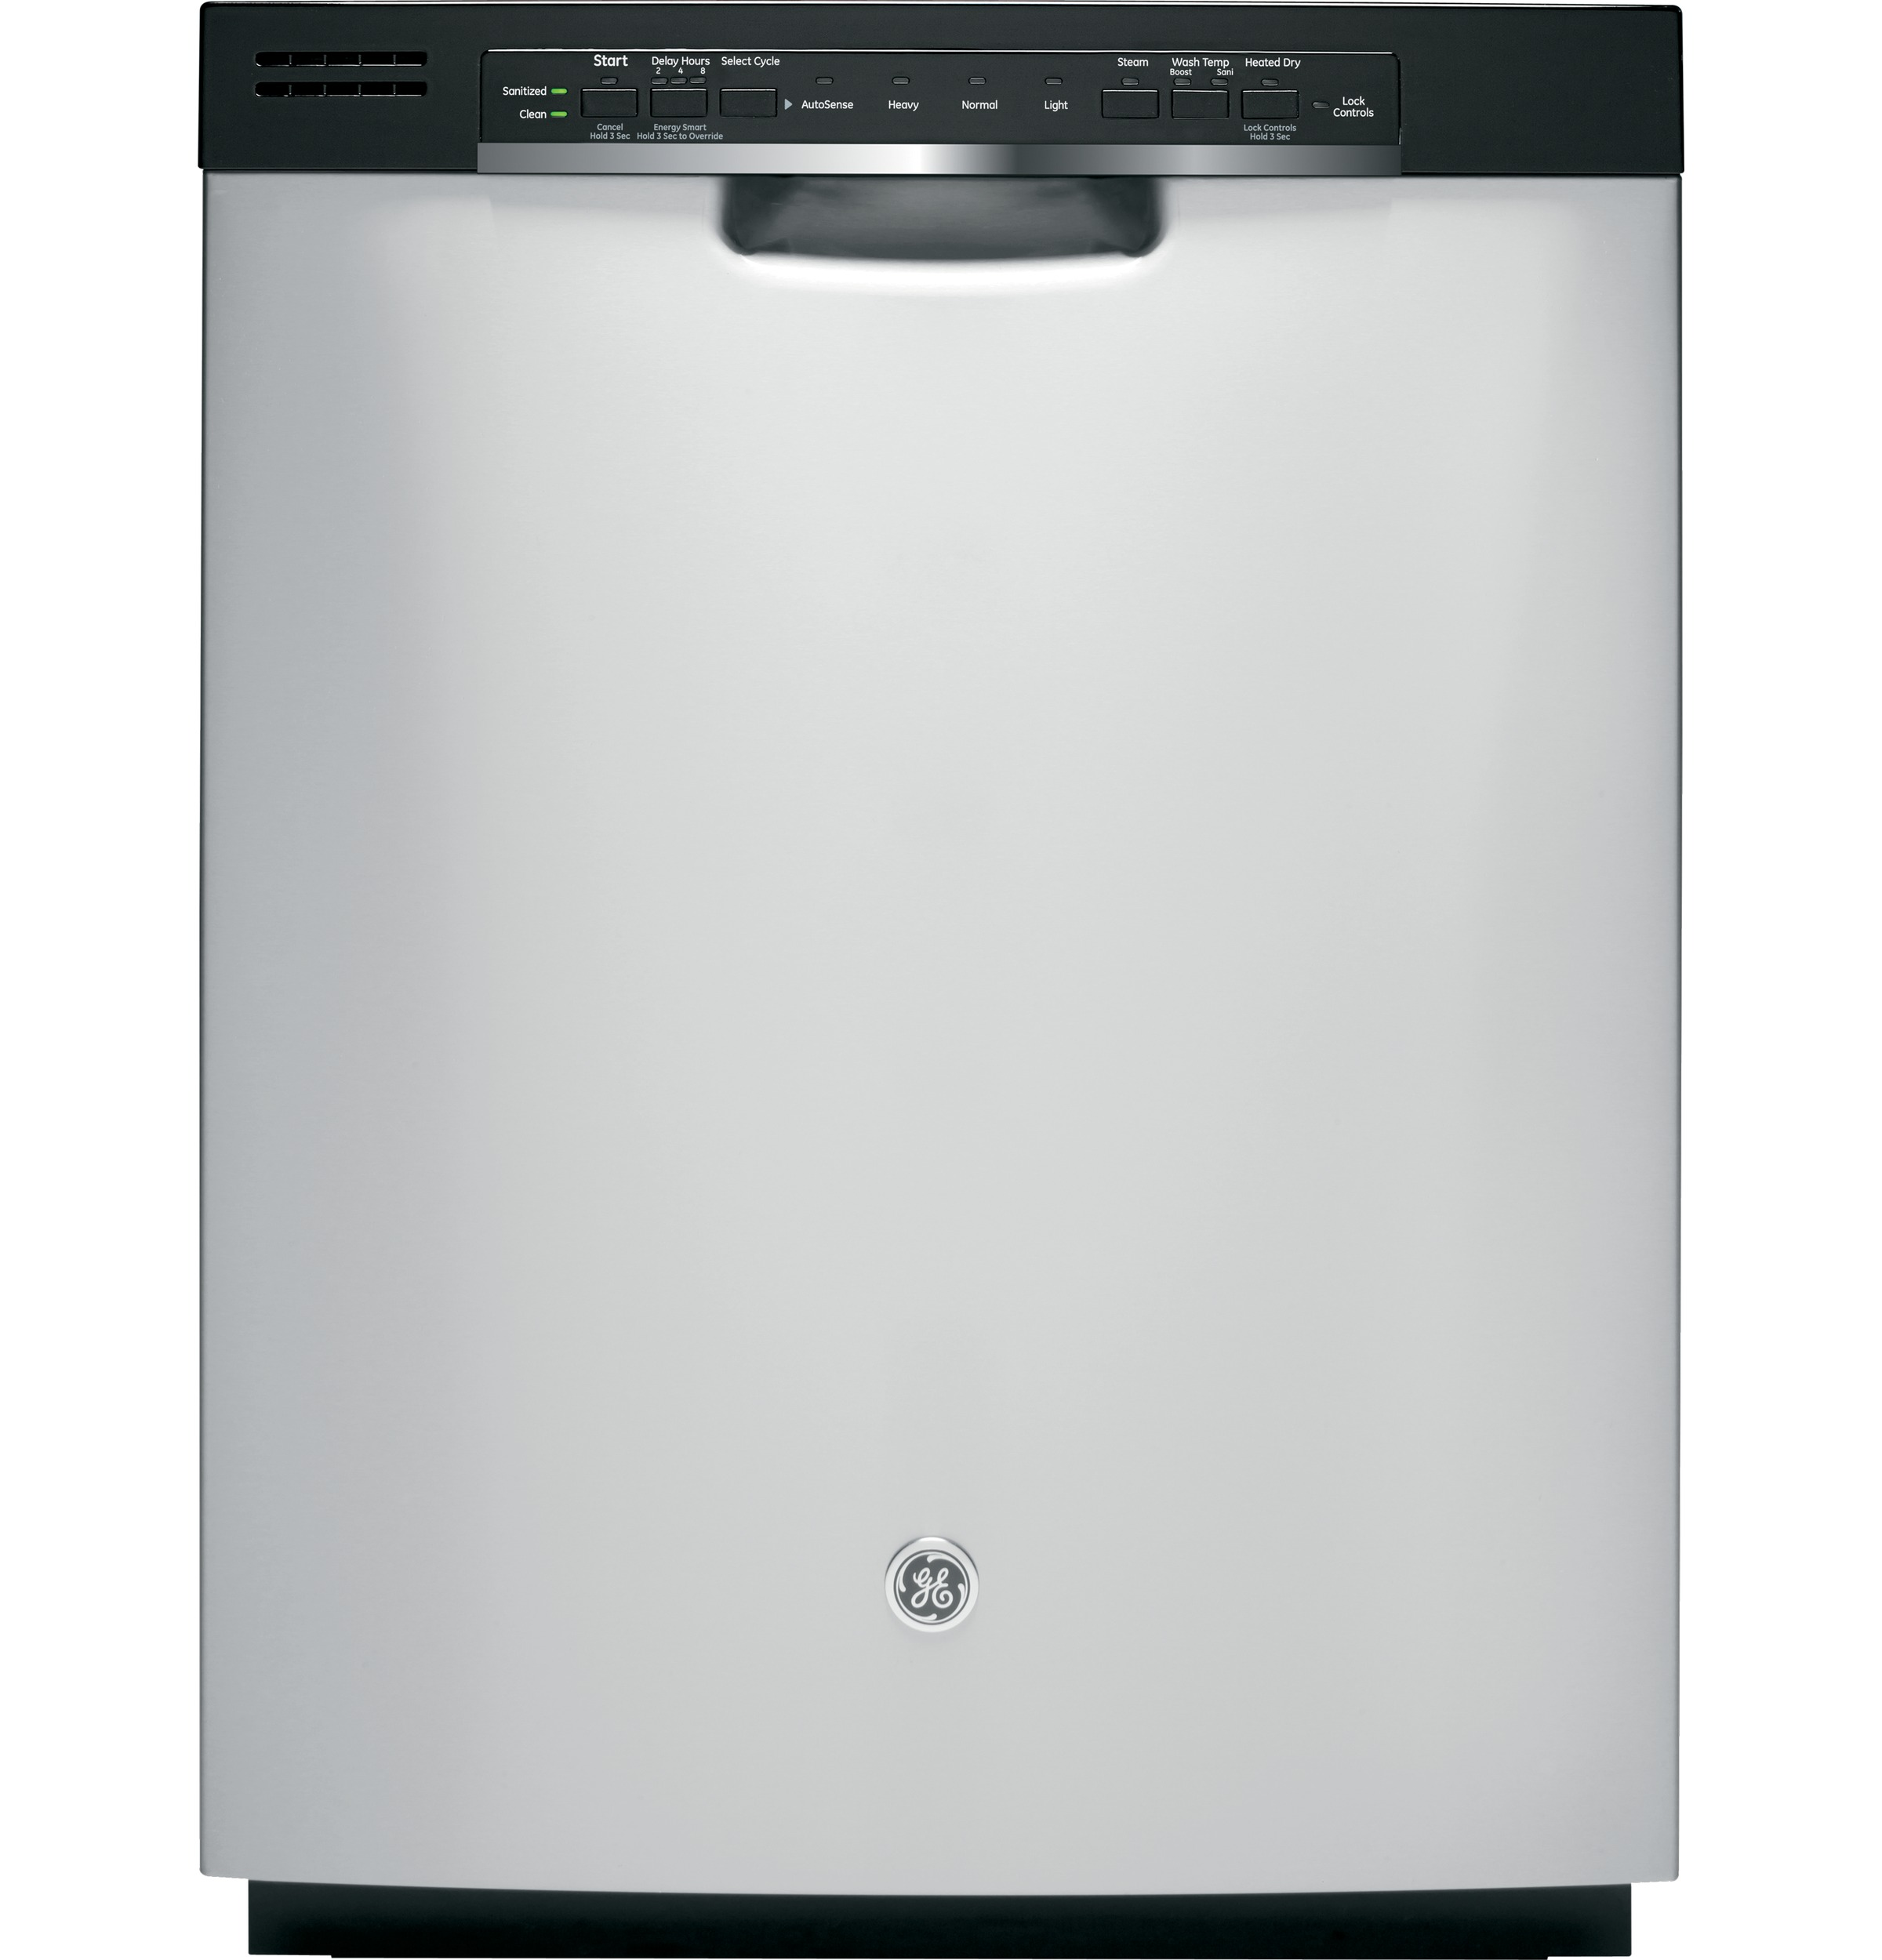 Ge Hybrid Stainless Steel Interior Dishwasher With Front Controls Gdf540hsdss Ge Appliances